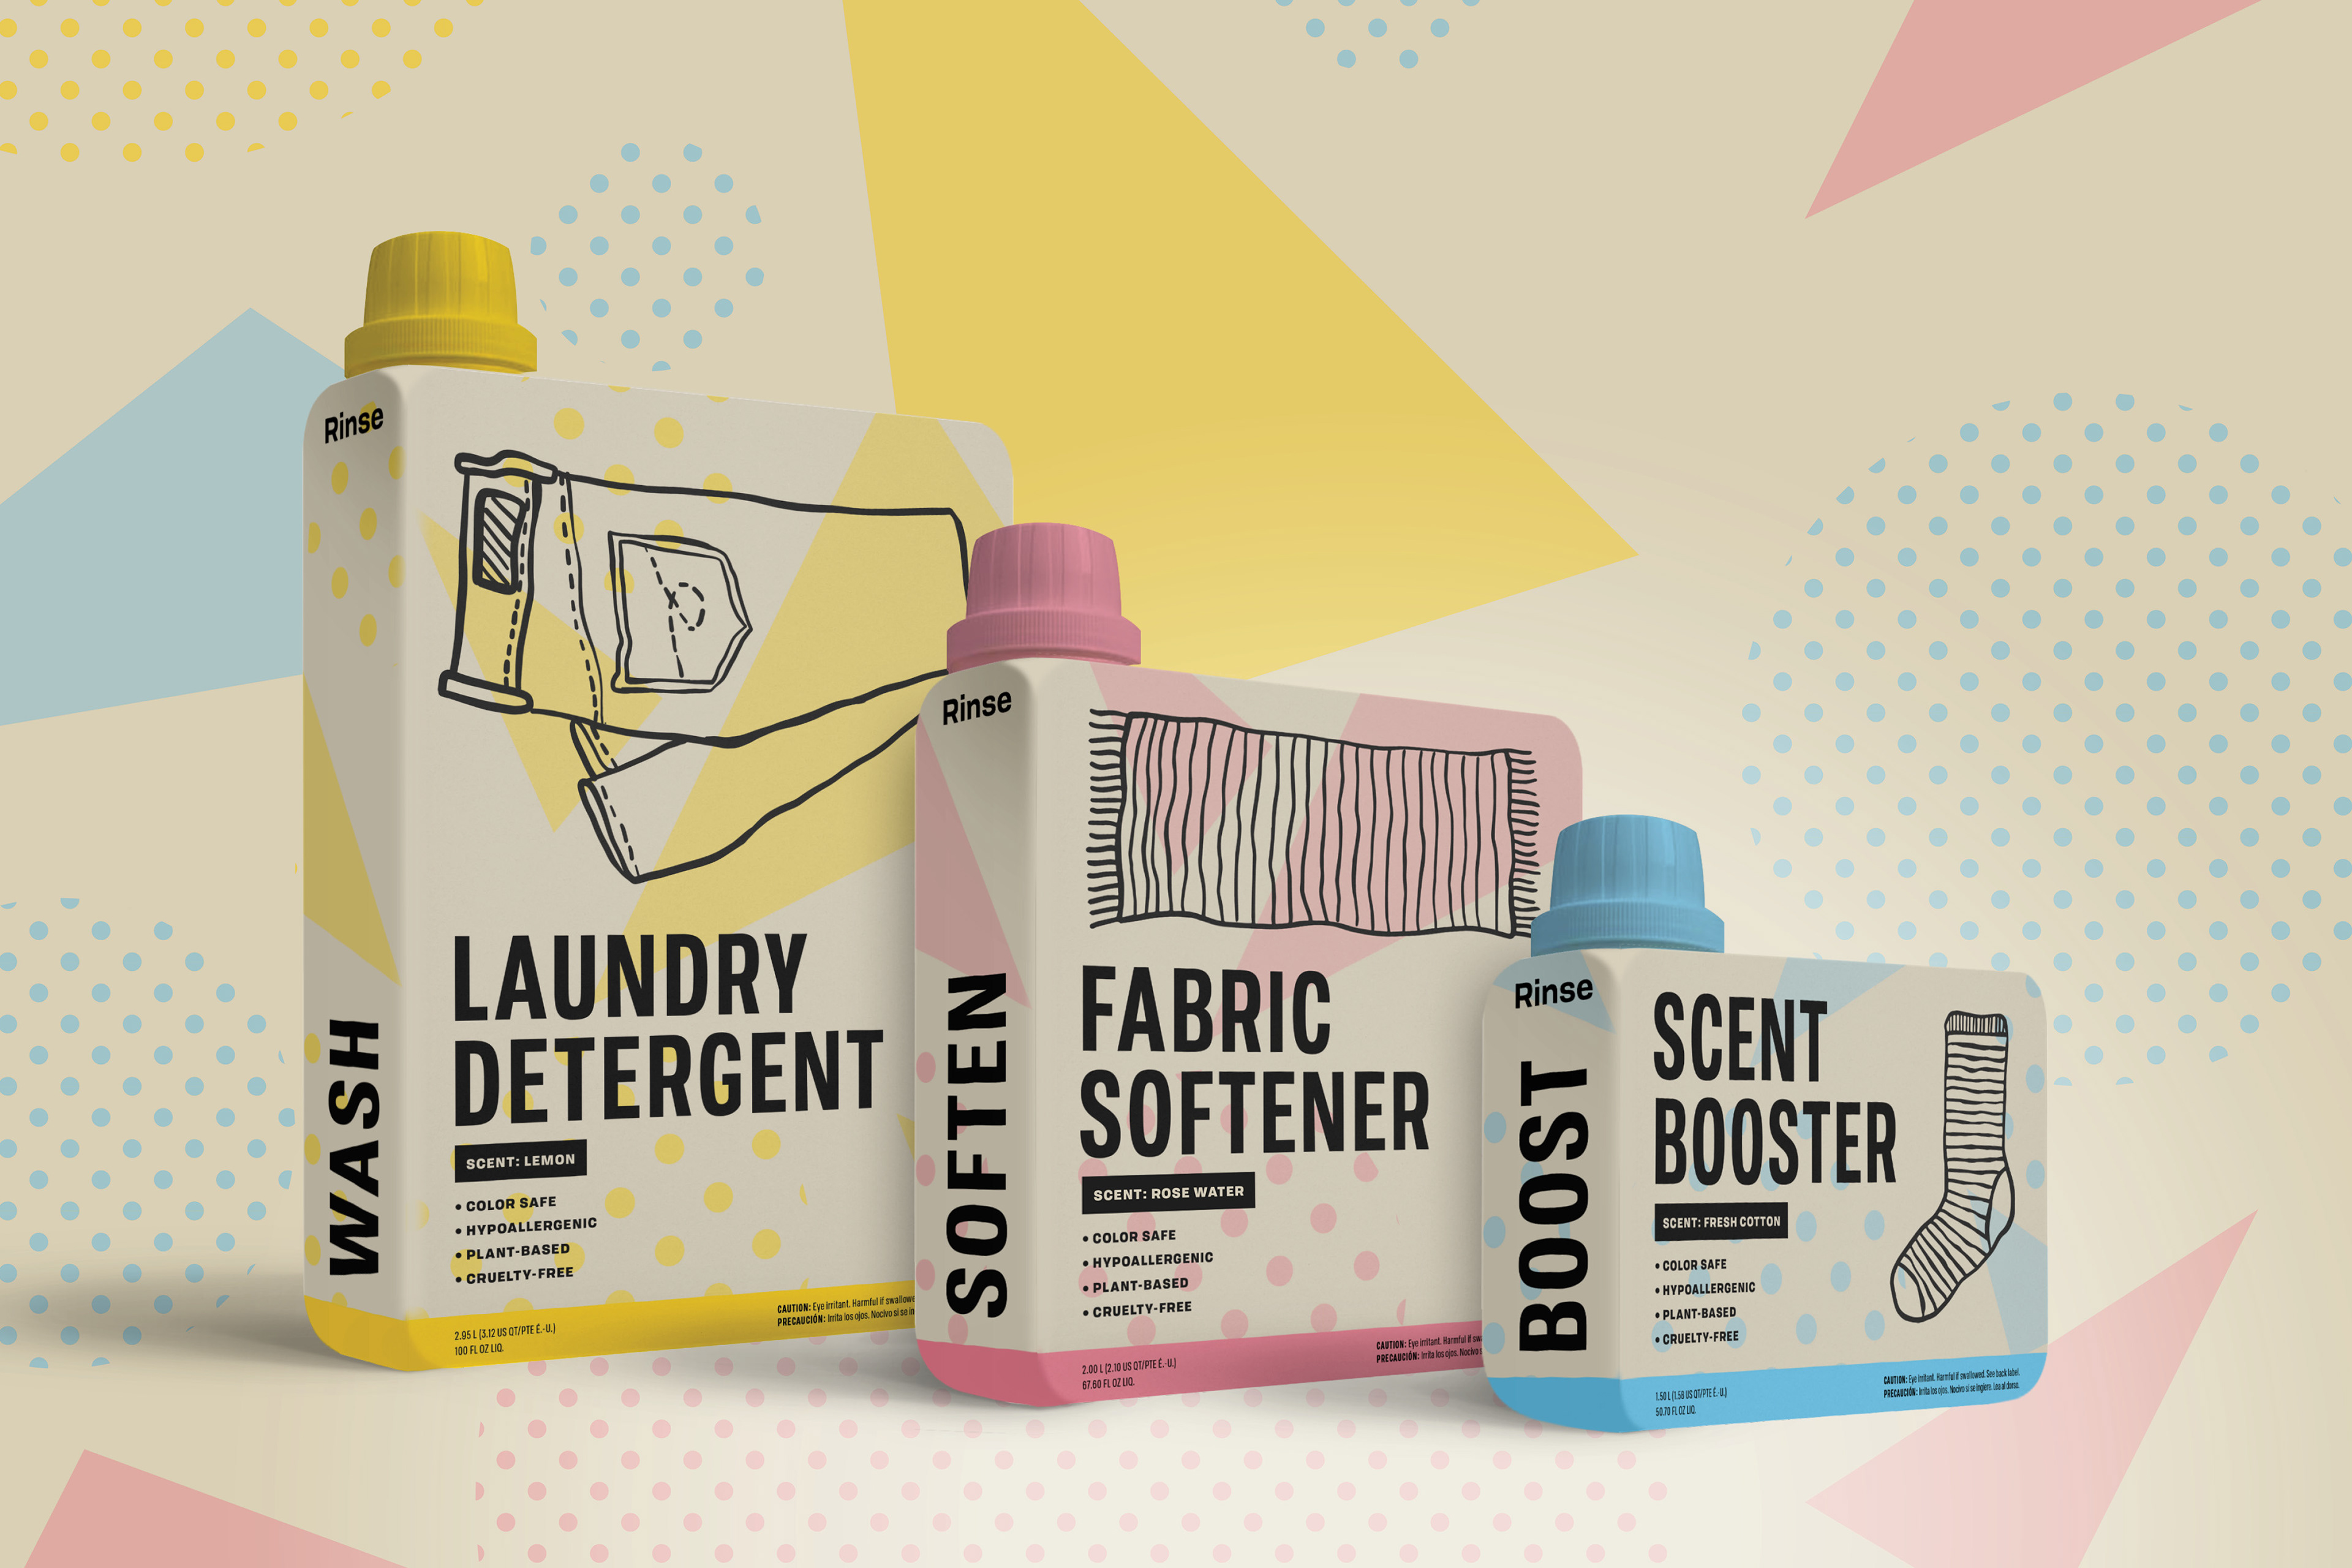 Cal Poly Graphic Design student project / Art 437: Graphic Design III / laundry detergent package design